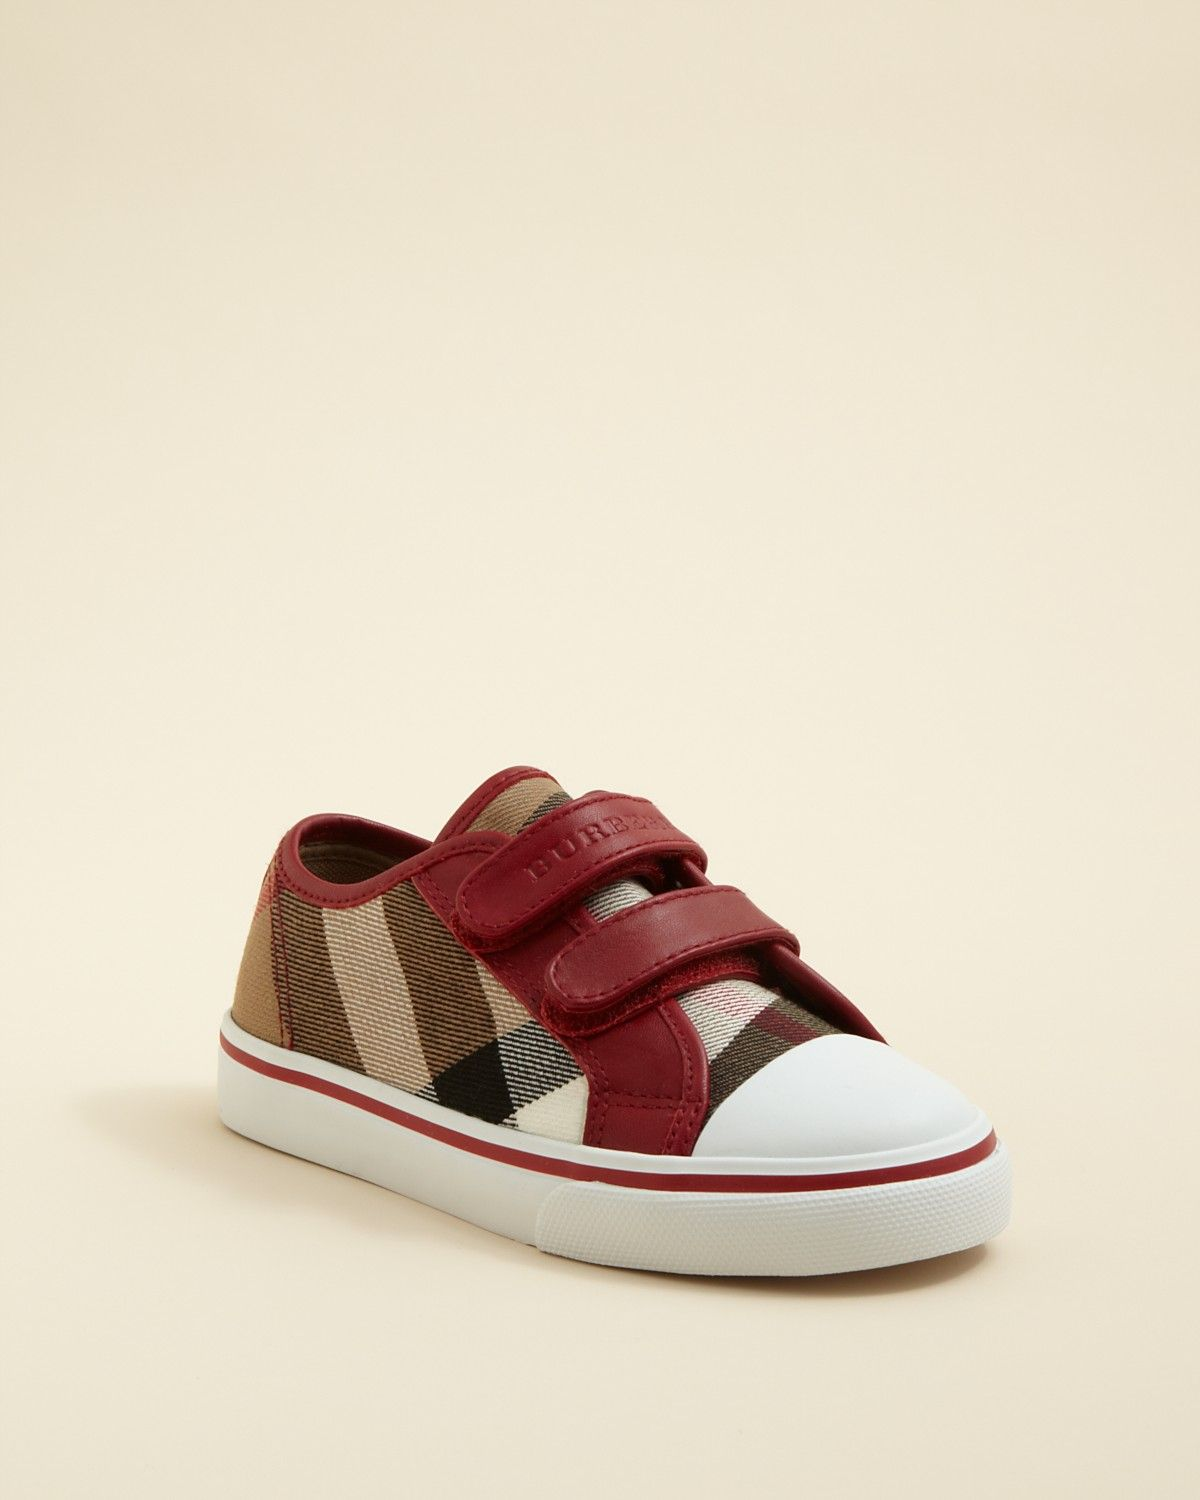 Burberry Boys' Pete Check Low Top Velcro Sneakers - Toddler, Little Kid |  Bloomingdale's